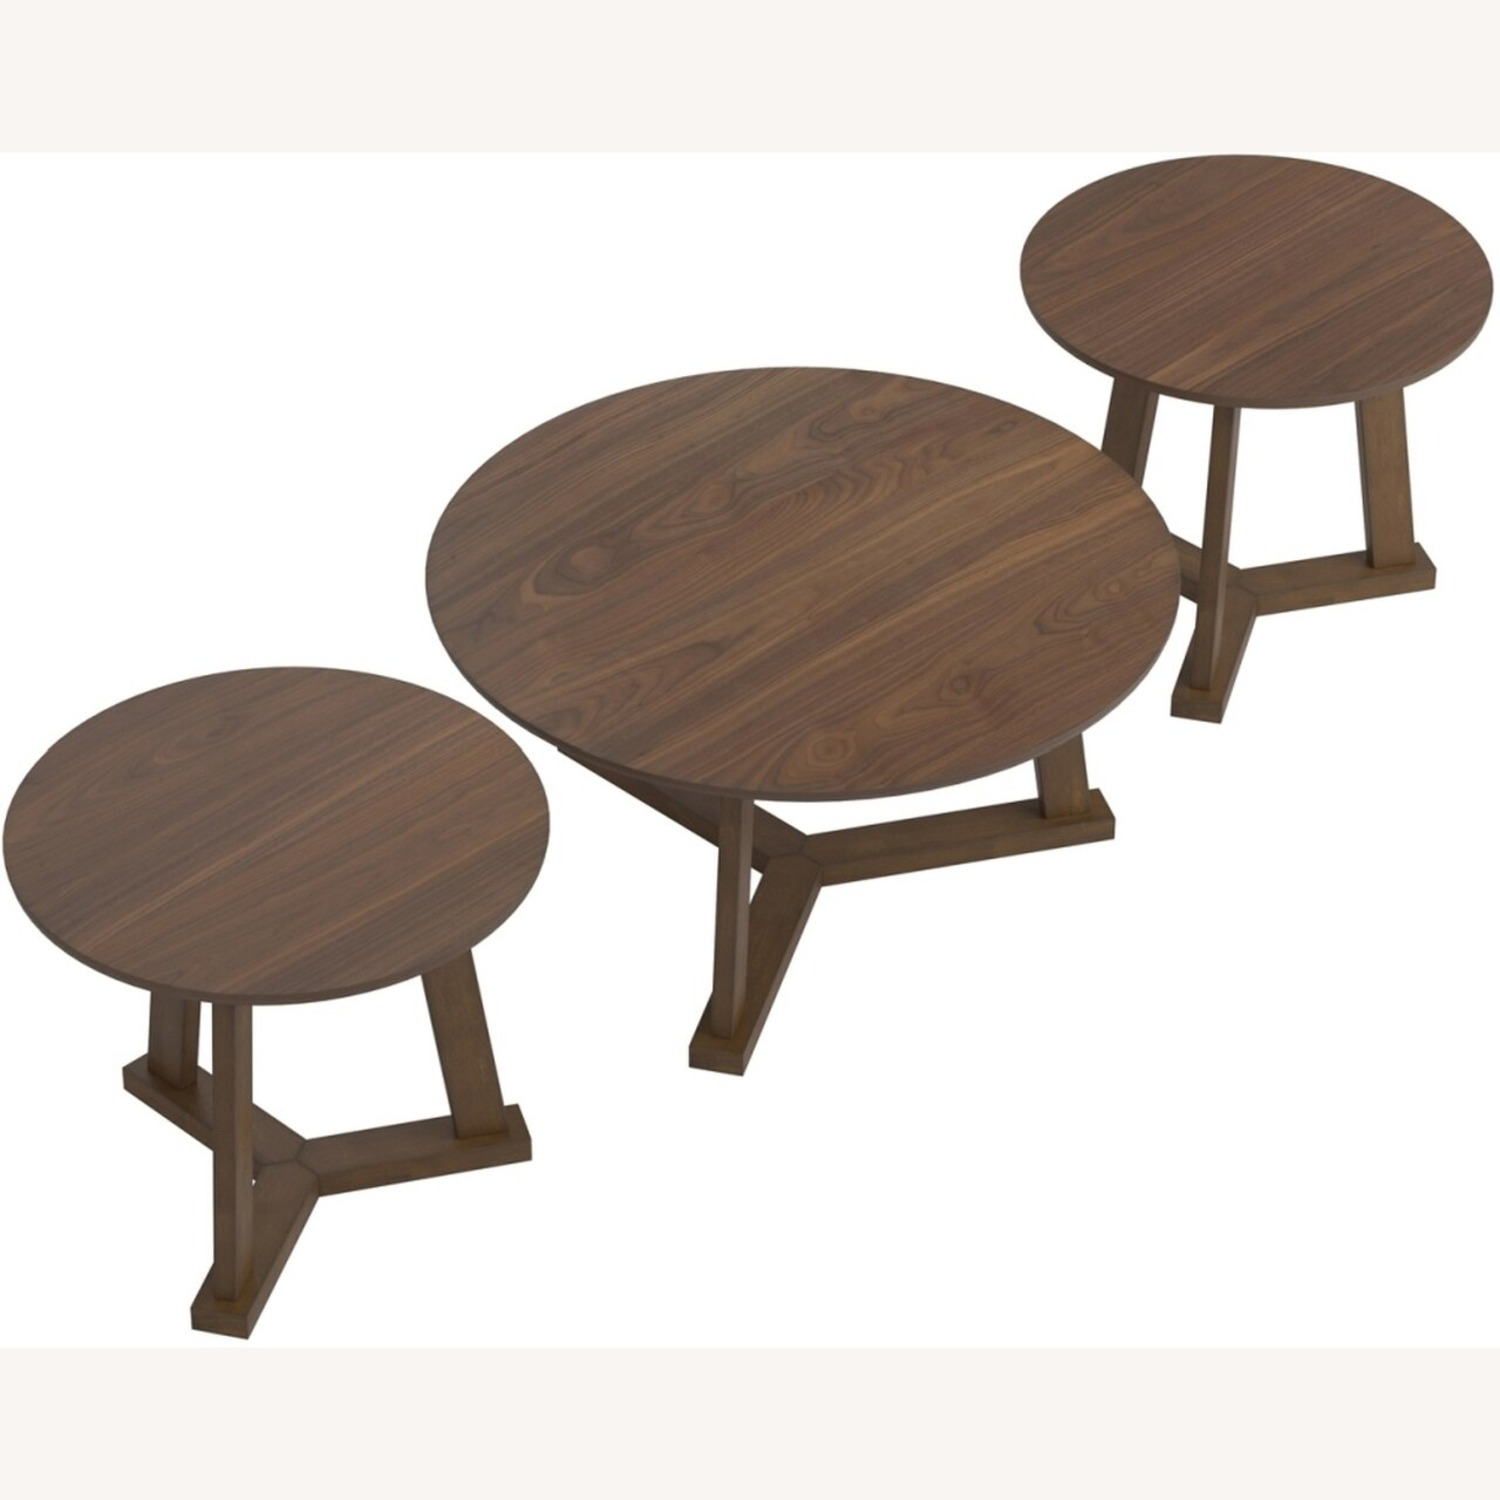 Versitile 3-Piece Occasional Set In Natural Walnut - image-1